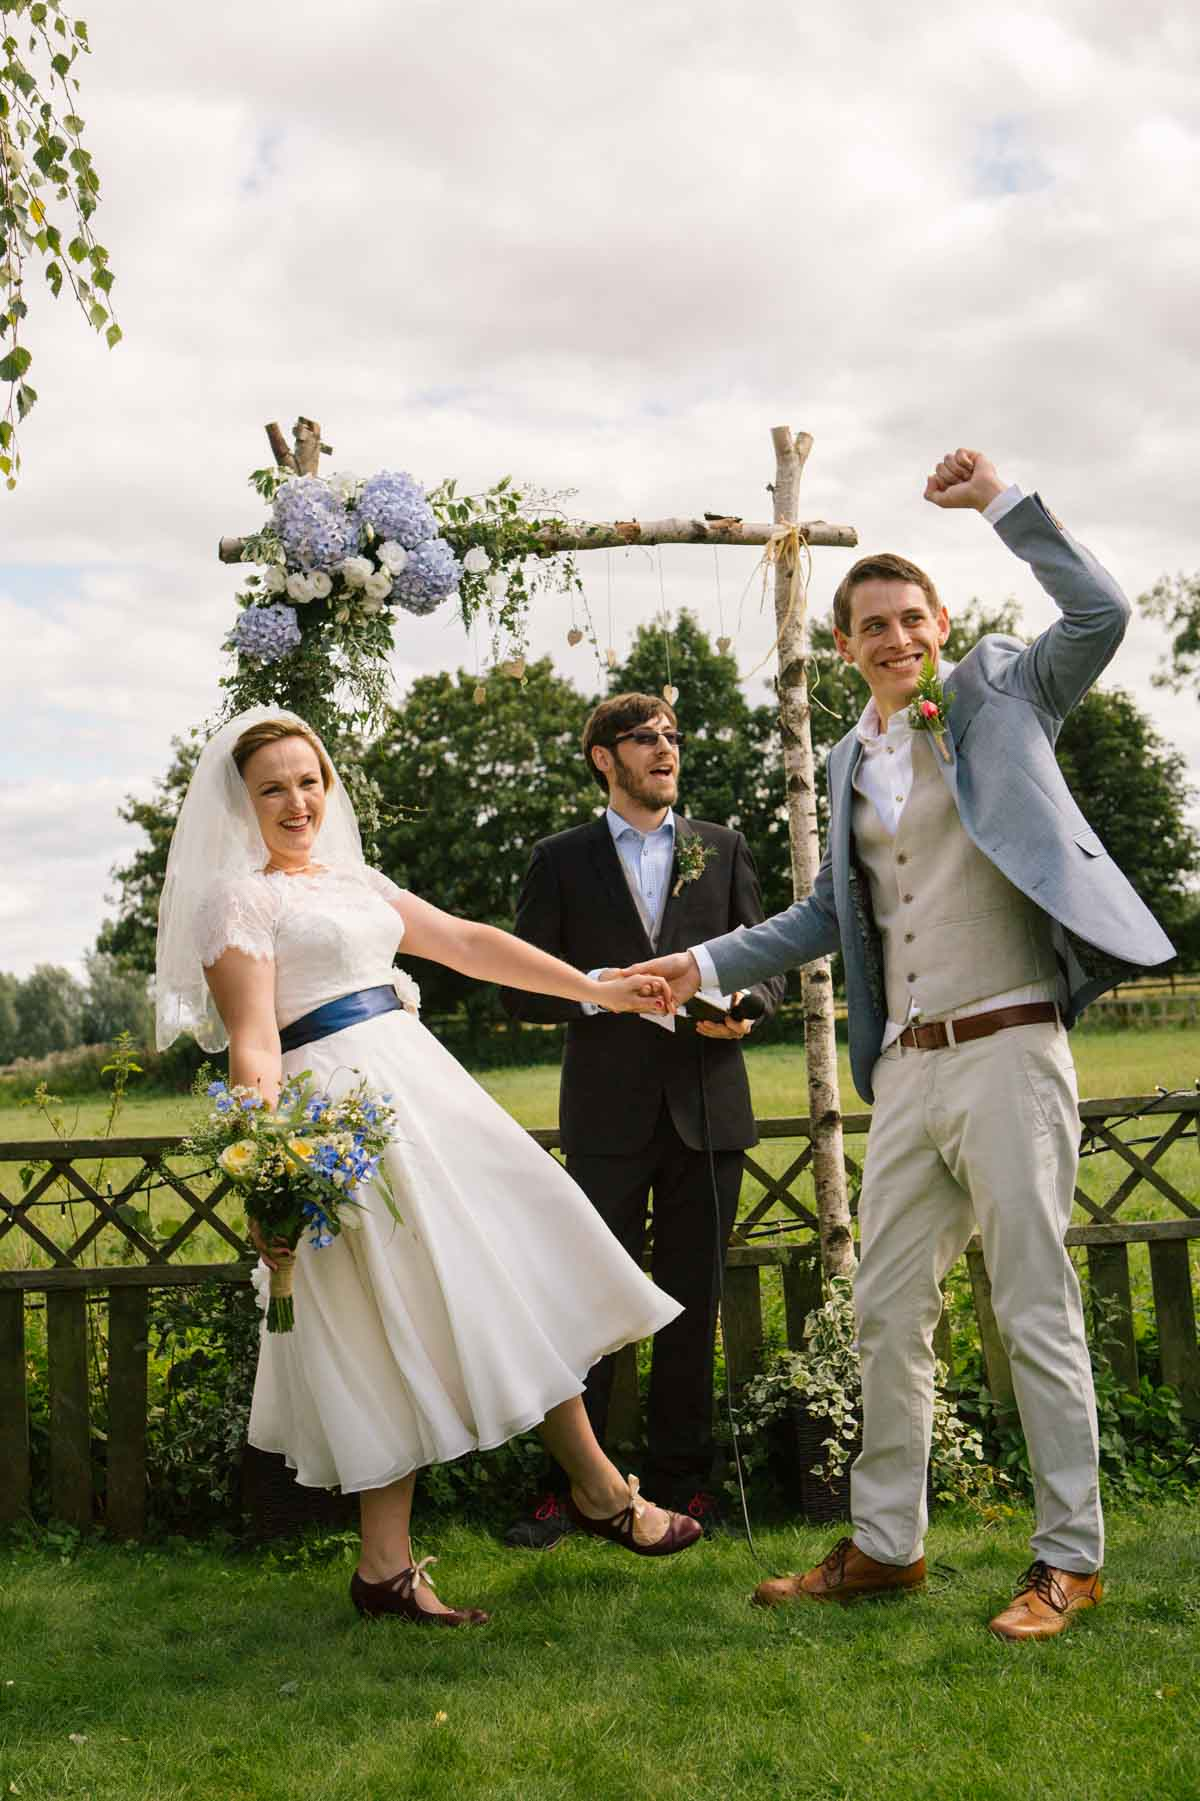 That 'Just Married' feeling. The groom punches the air while the bride laughs